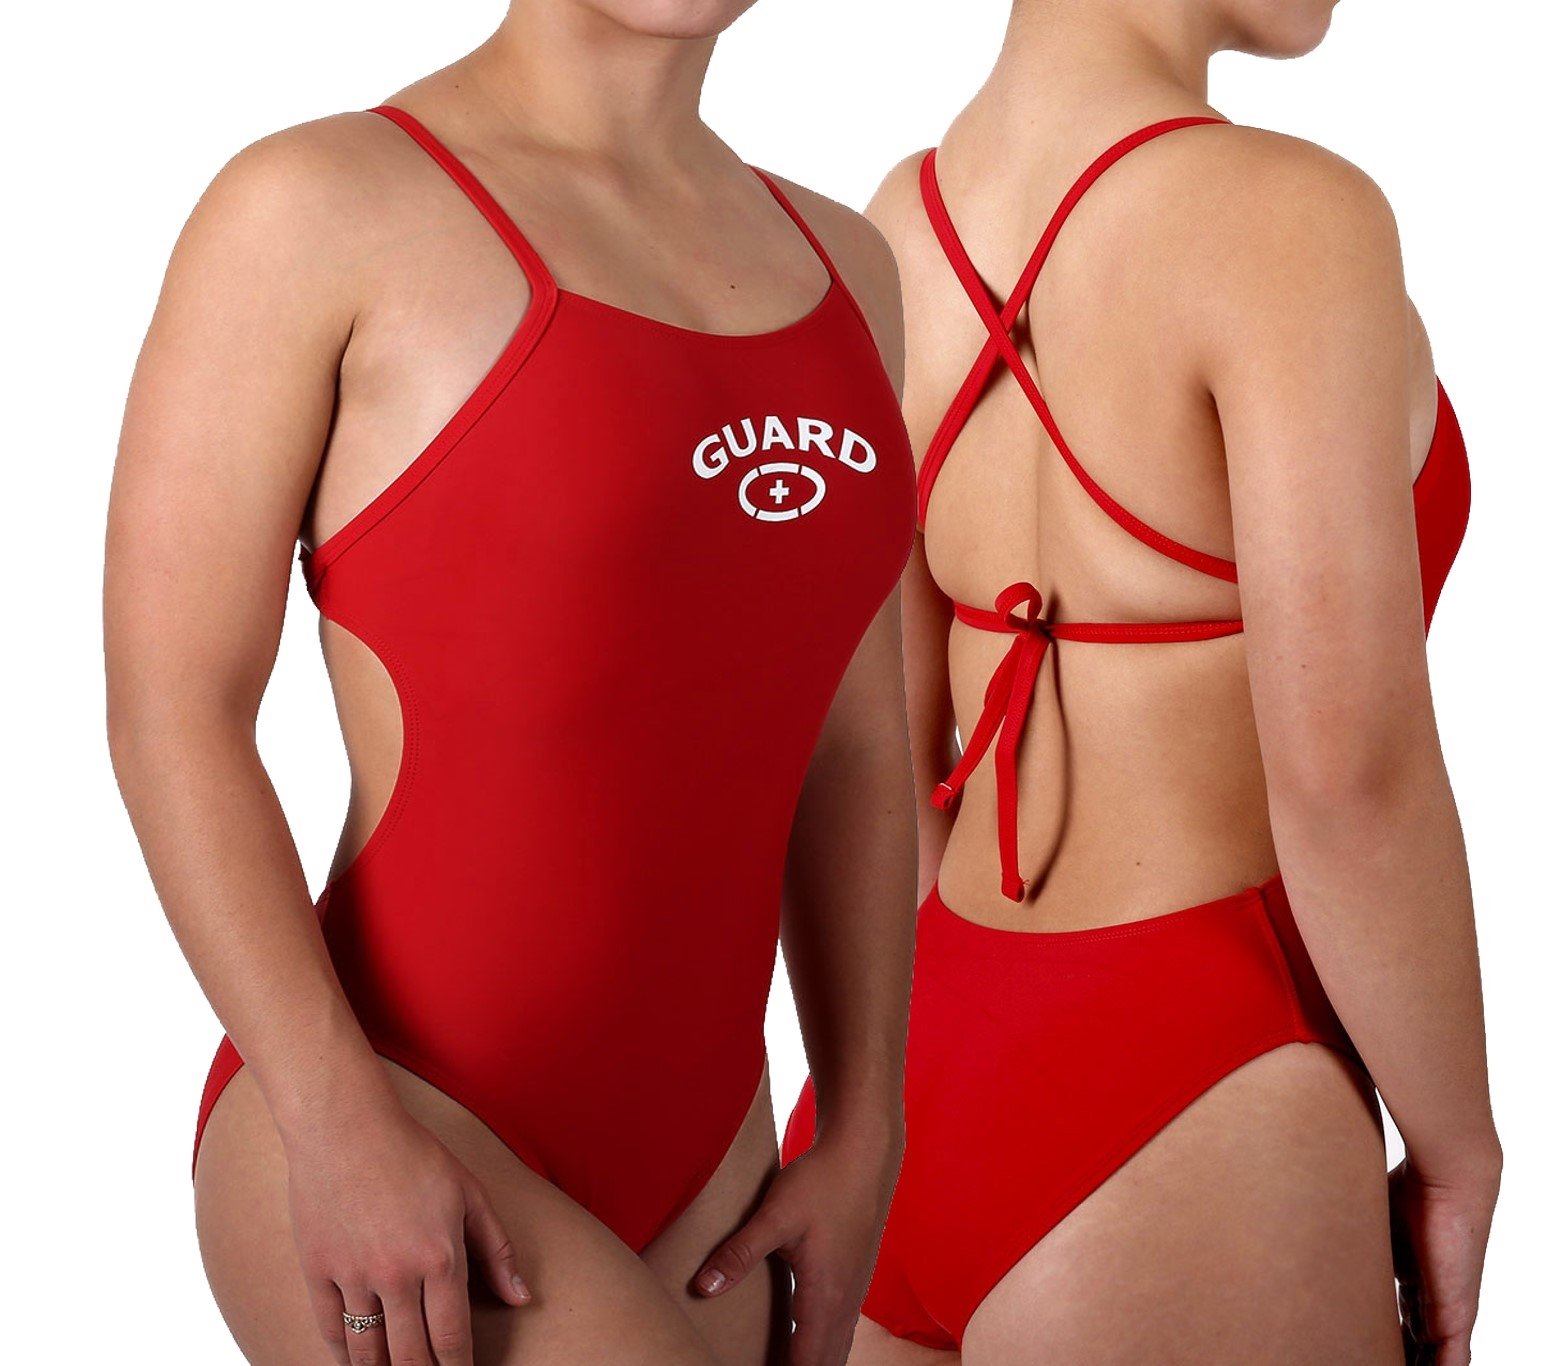 Adoretex Girls//Womens Guard Thin Strap Flyback One Piece Swimsuit